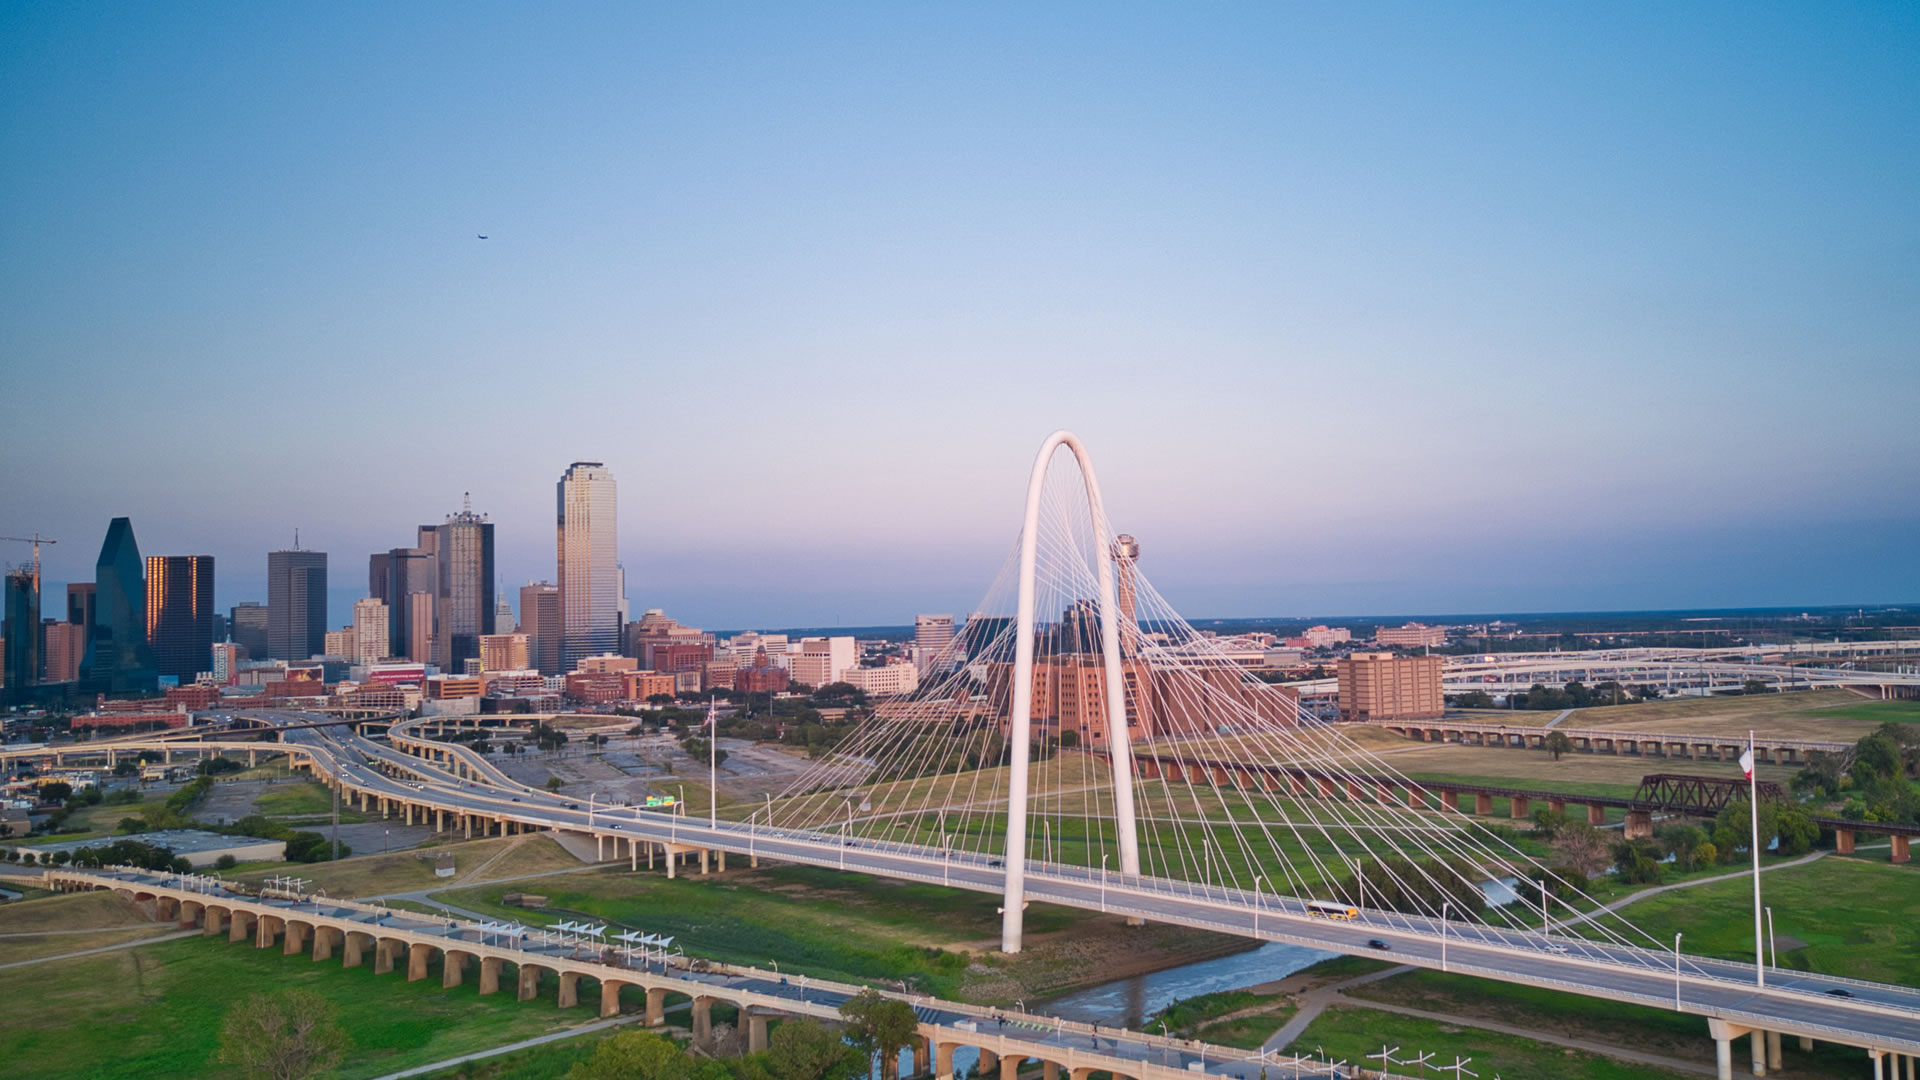 The Margaret Hunt Hill Bridge is designed by internationally renowned architect Santiago Calatrava. This stunning bridge with a 400 foot center arch connects Woodall Rodgers Freeway seamlessly to Singleton Boulevard in West Dallas.